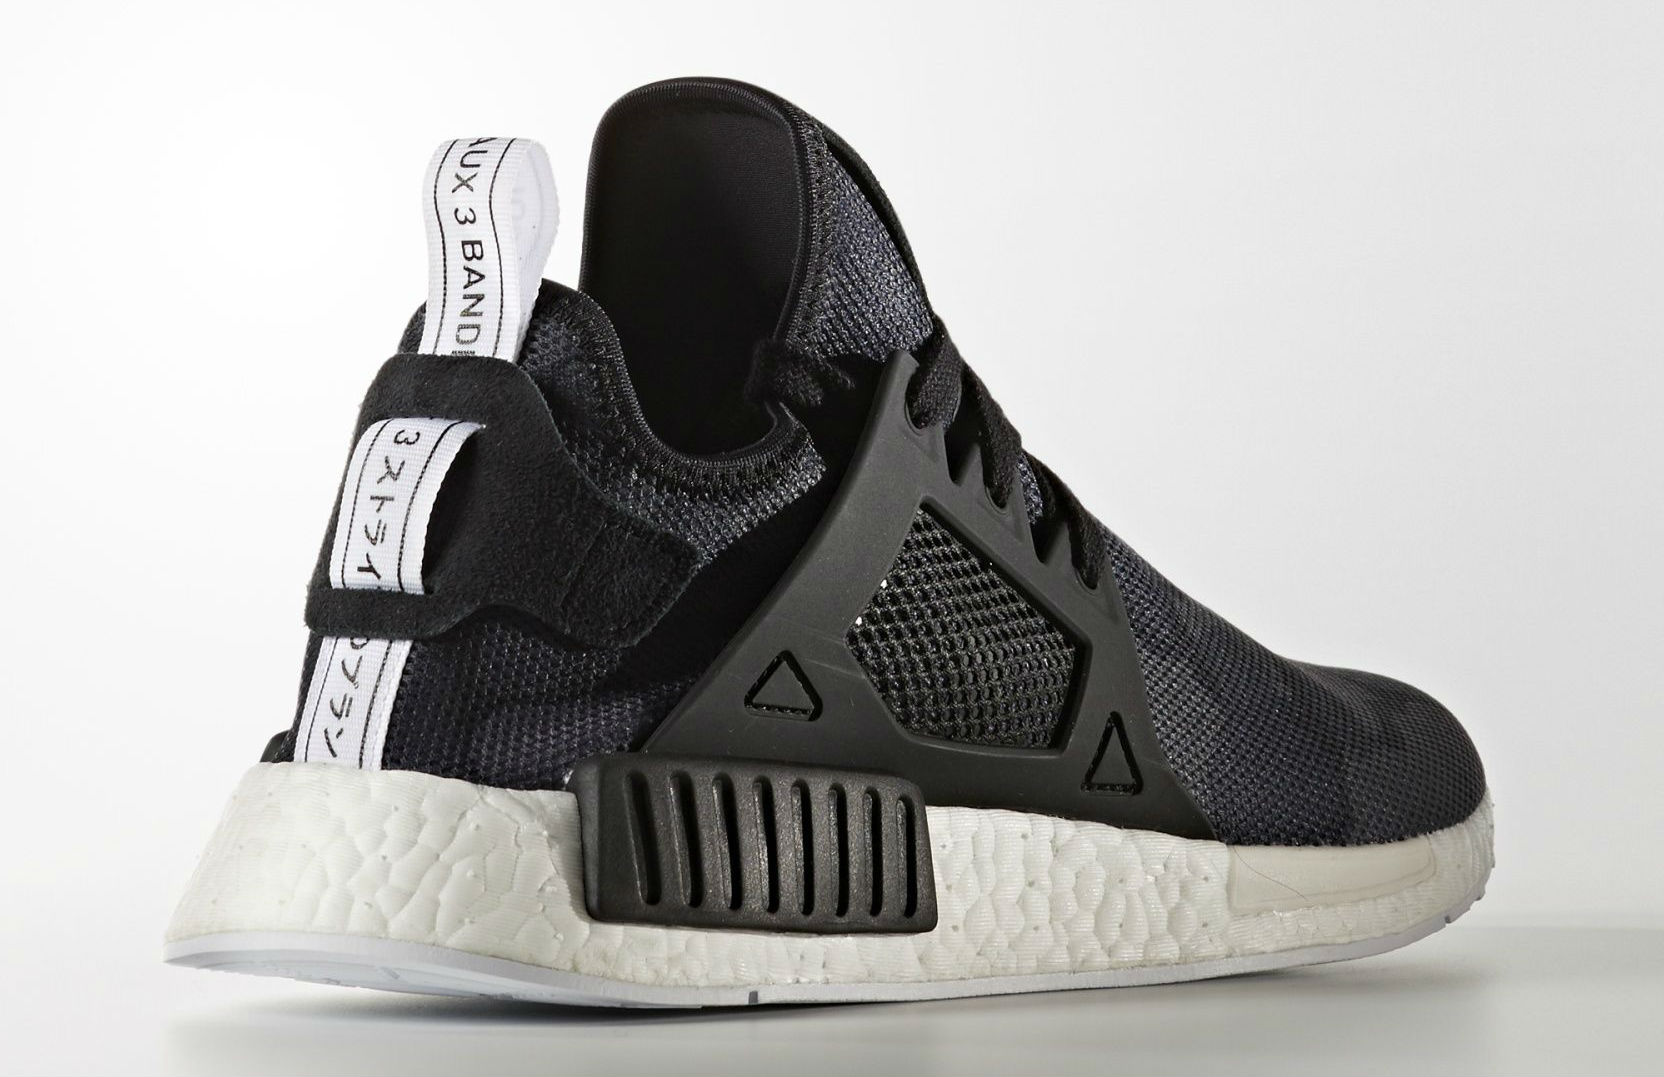 Qoo10 Adidas NMD XR1 Burgundy (W) (Code: BY9820) : Shoes